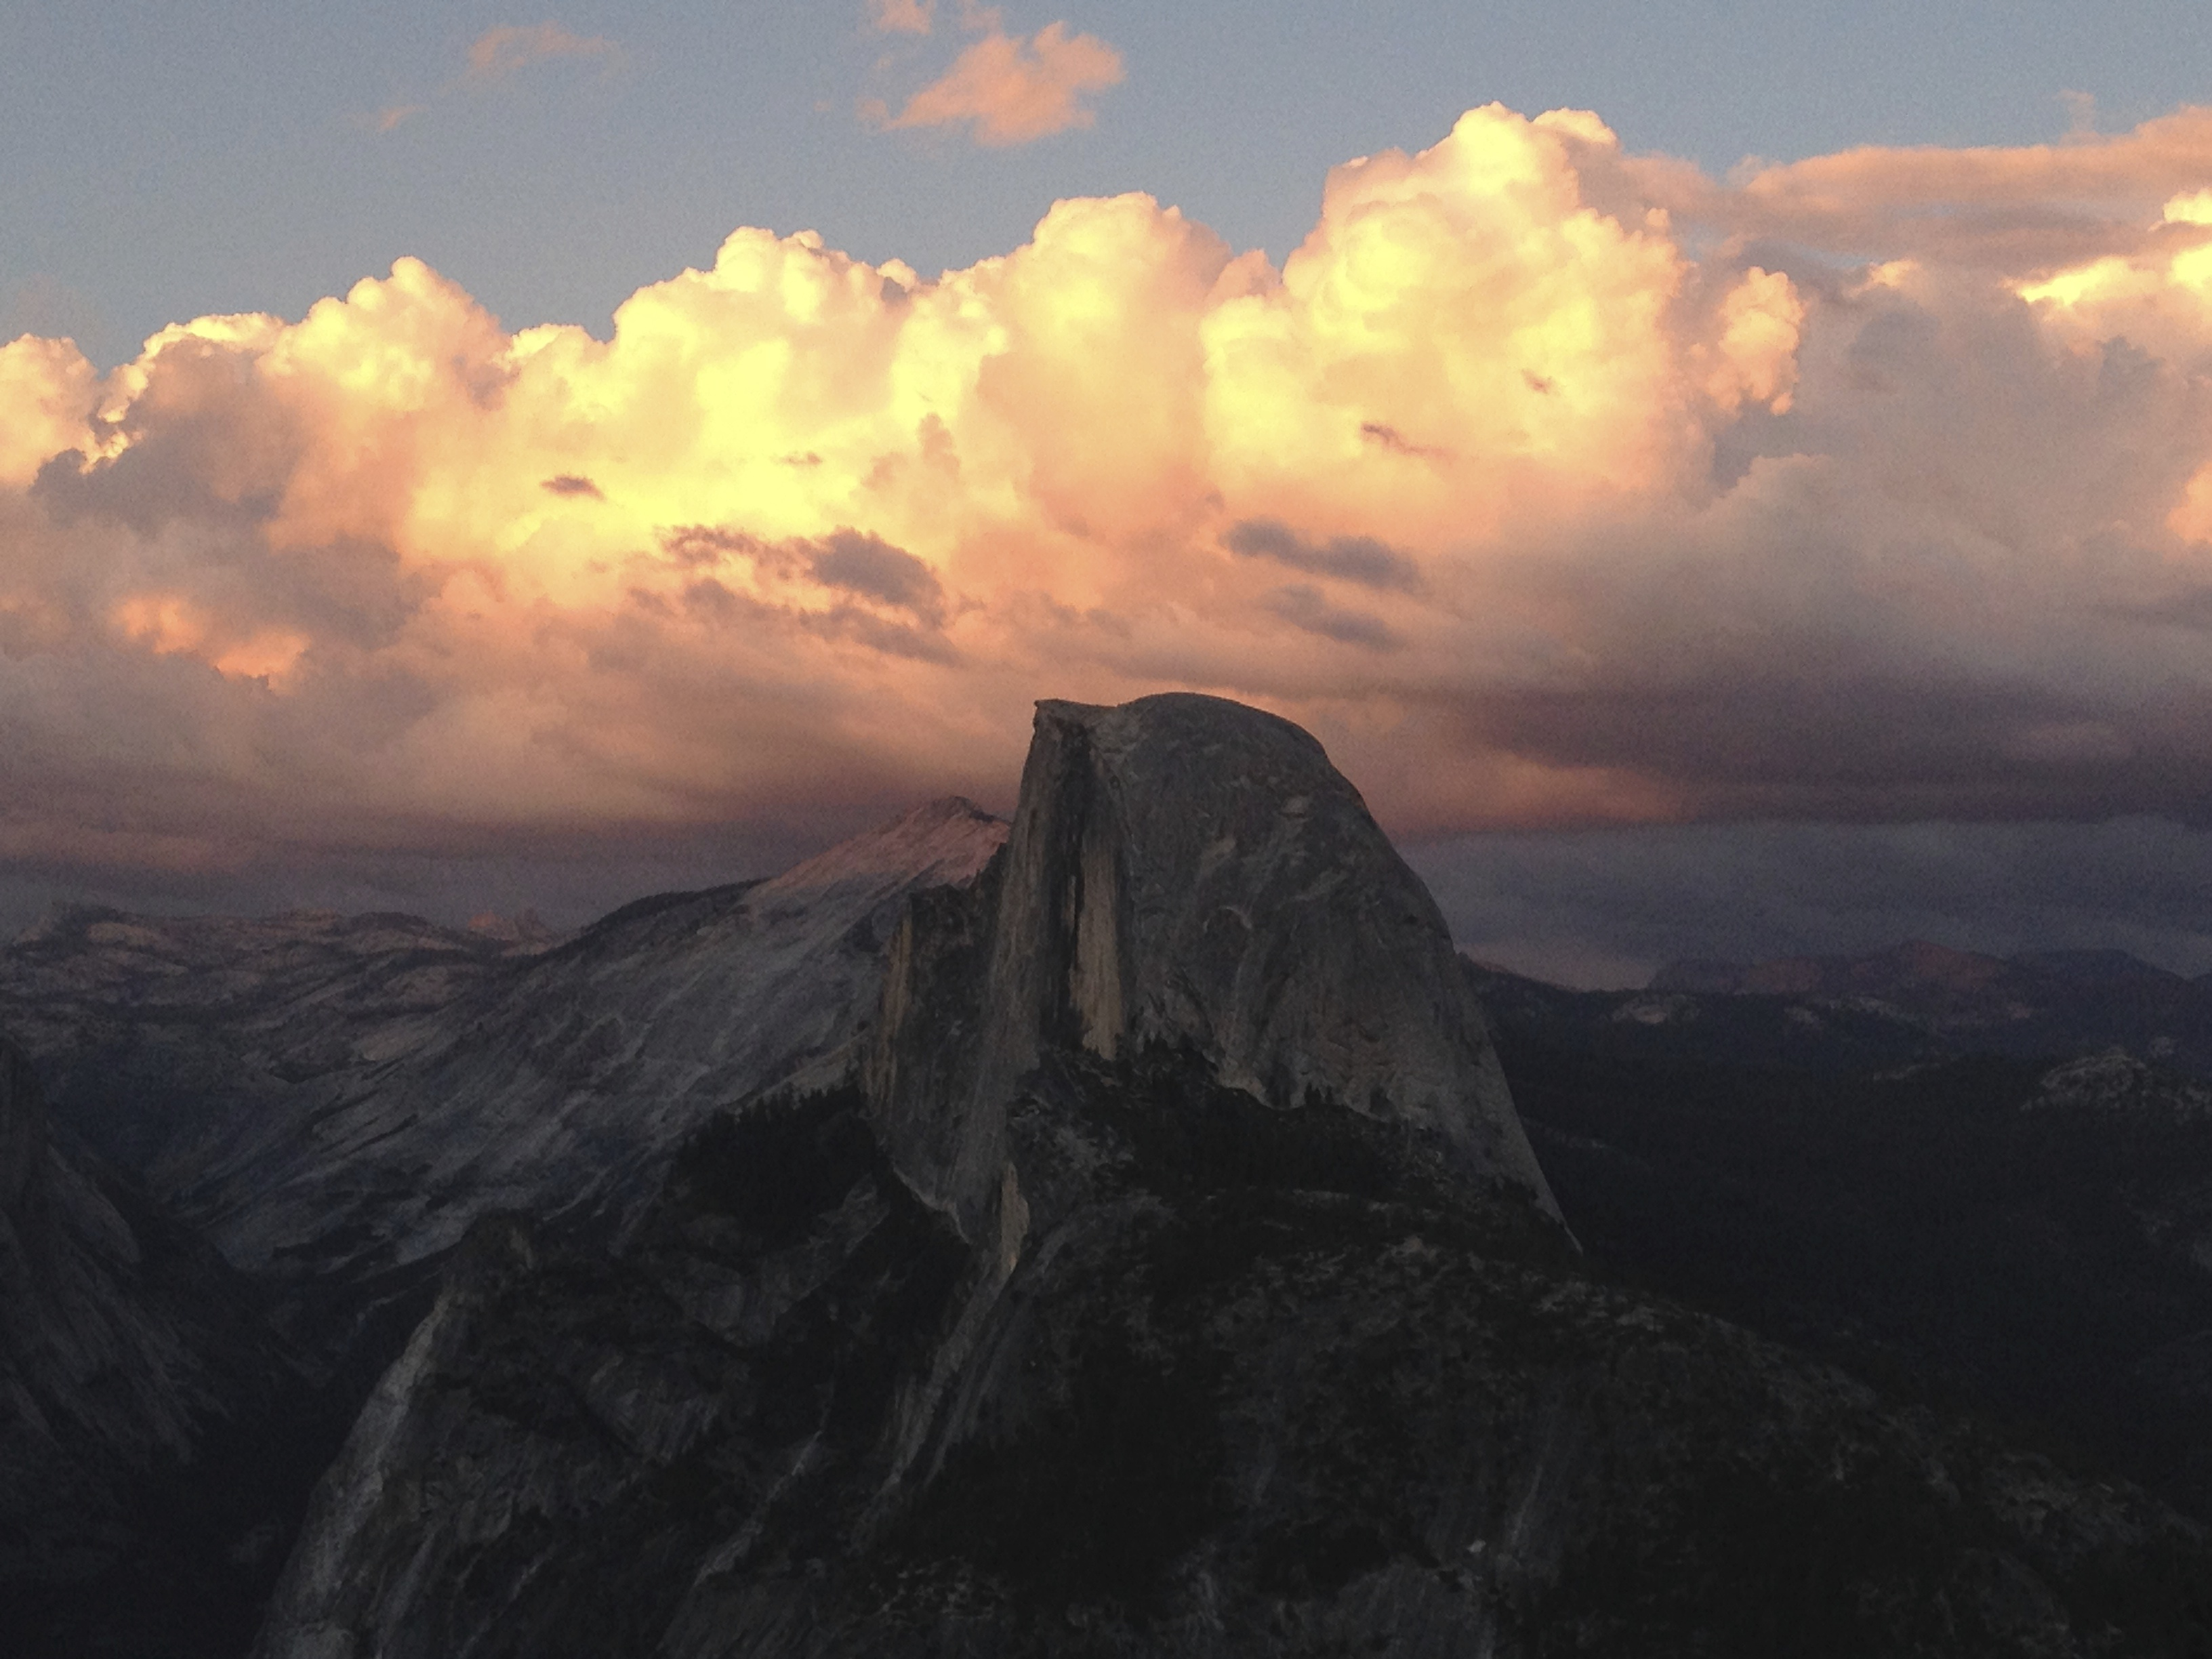 I took this photo of Half Dome in Yosemite at sunset. Half Dome is silhouetted  because the sun had already set, but the sky is full of color.